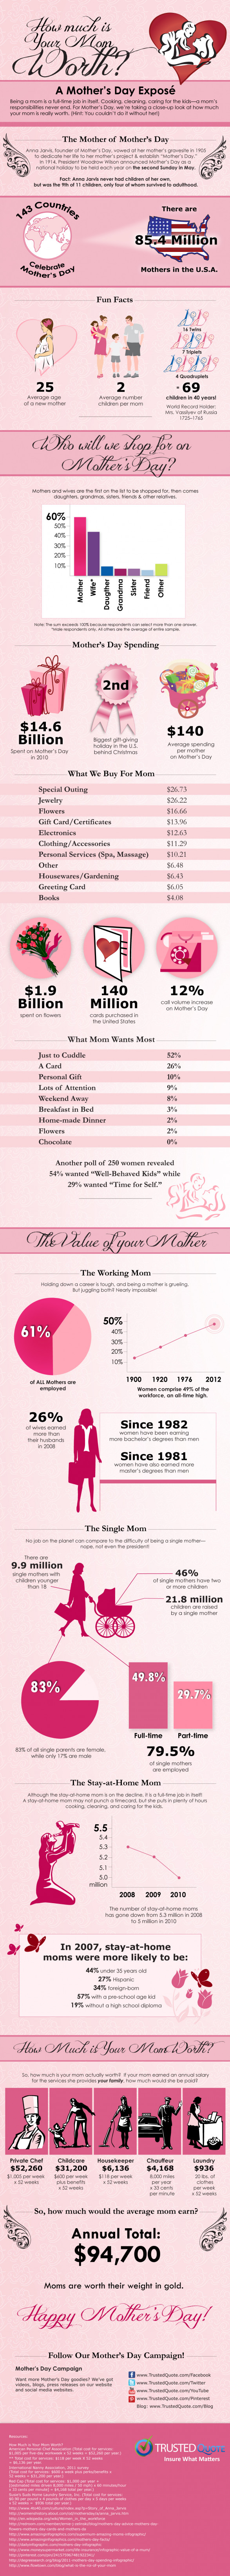 How Much is Your Mom Worth - Happy Mother's Day!